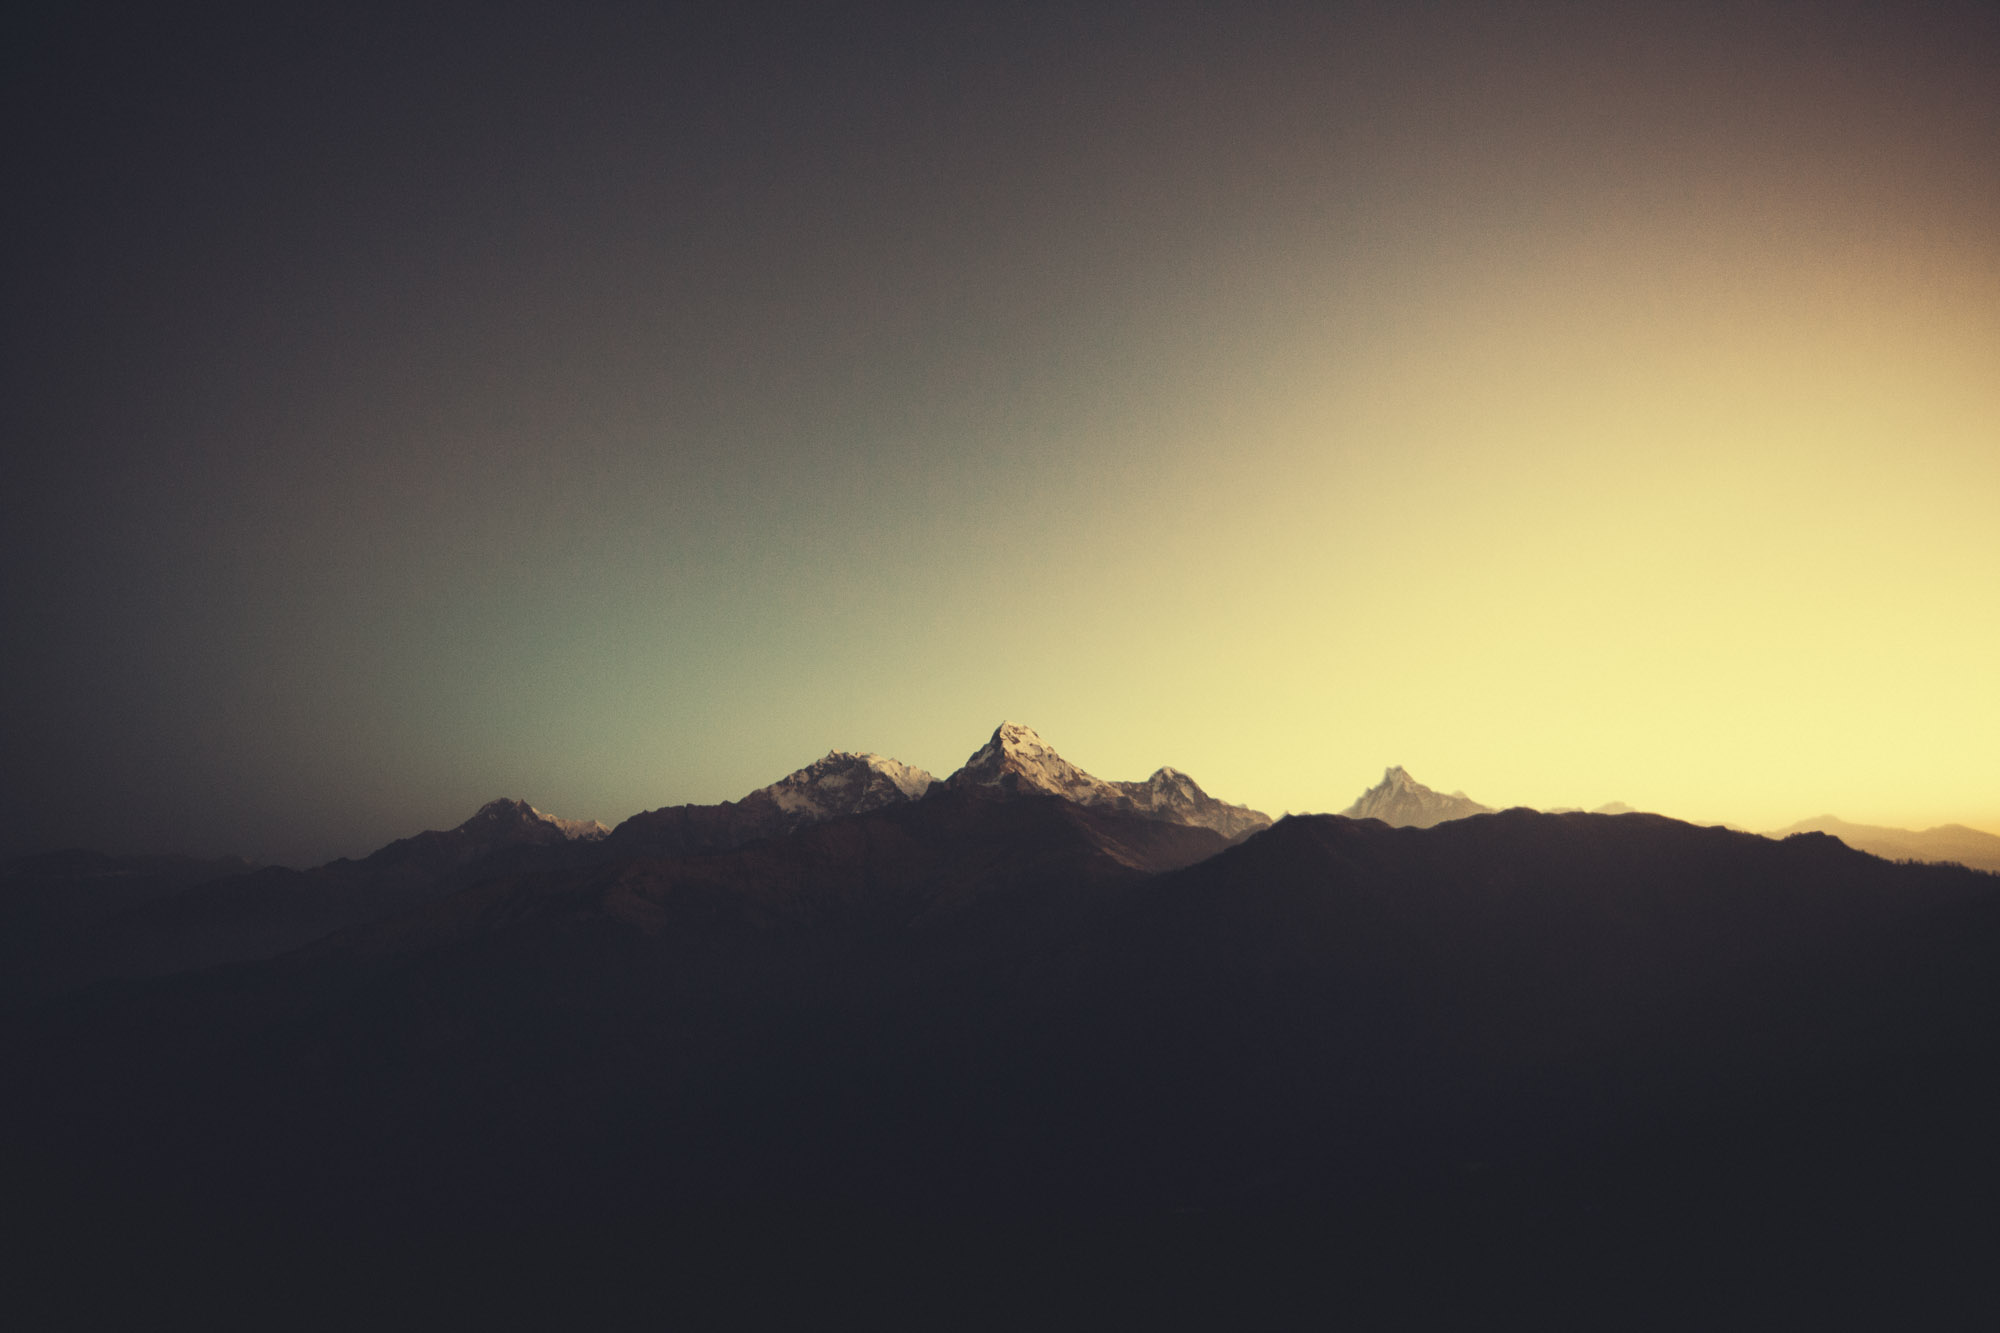 Mountains miiniim for Minimal art hd